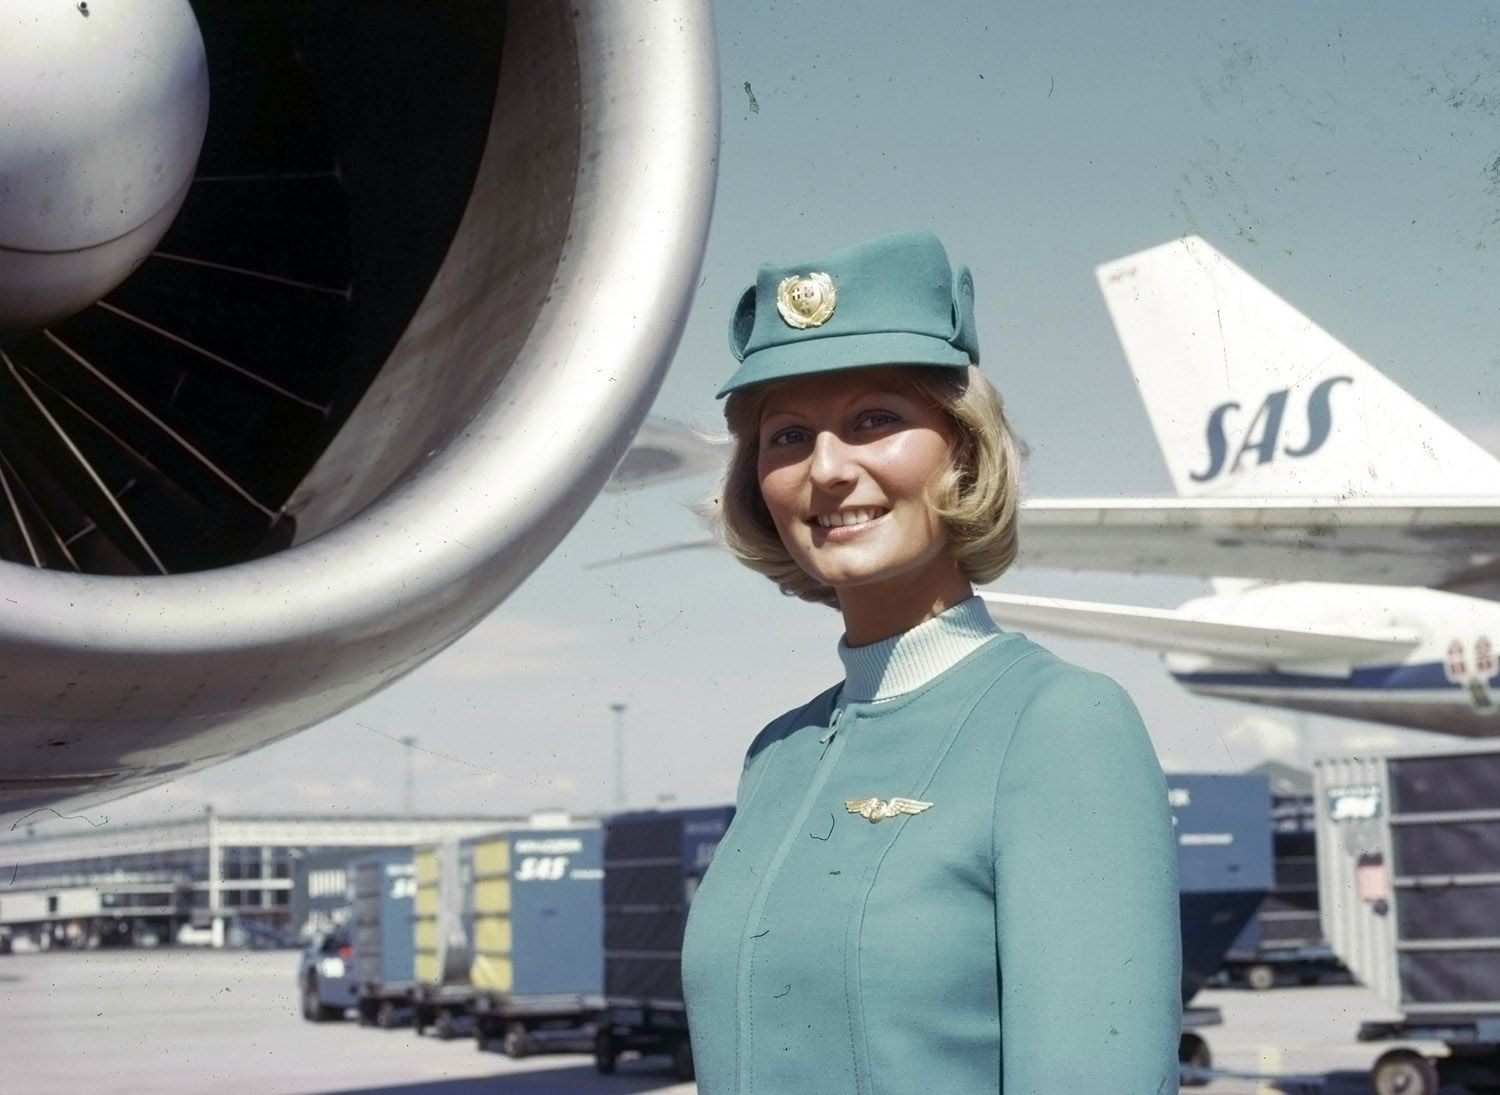 Scandinavian Stewardesses Takes Us Into The Jet Age Stewardess Scandinavian Airlines System Flight Attendant Uniform